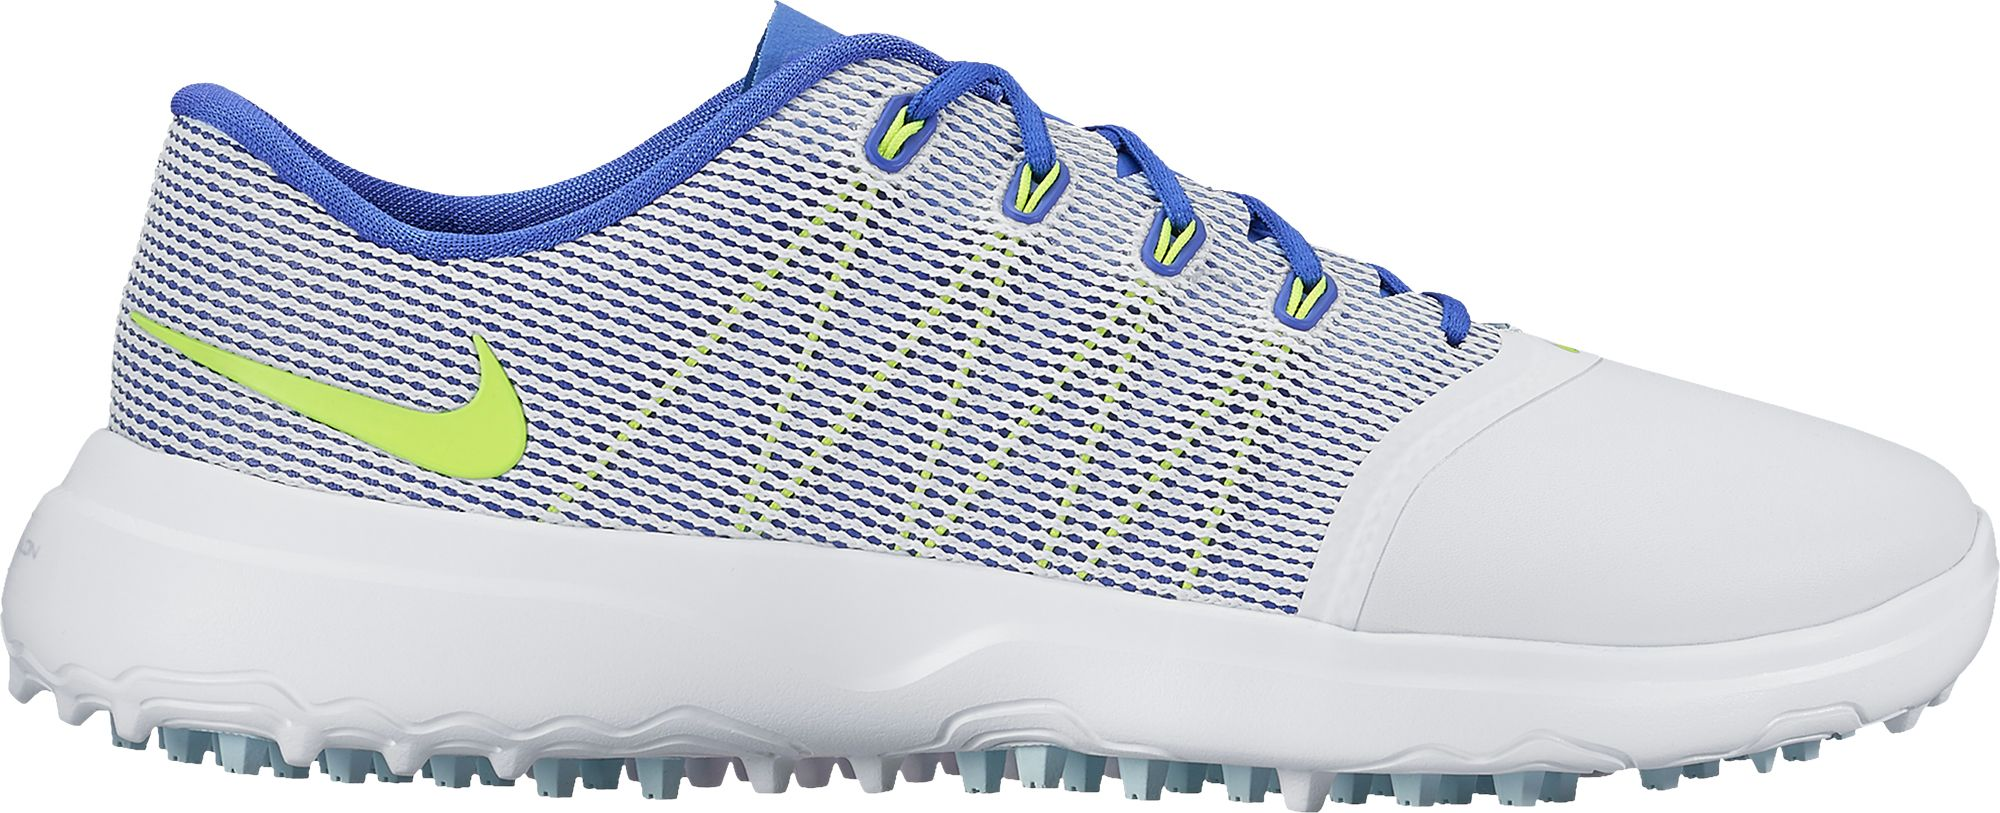 Nike Women\u0027s Lunar Empress 2 Golf Shoes